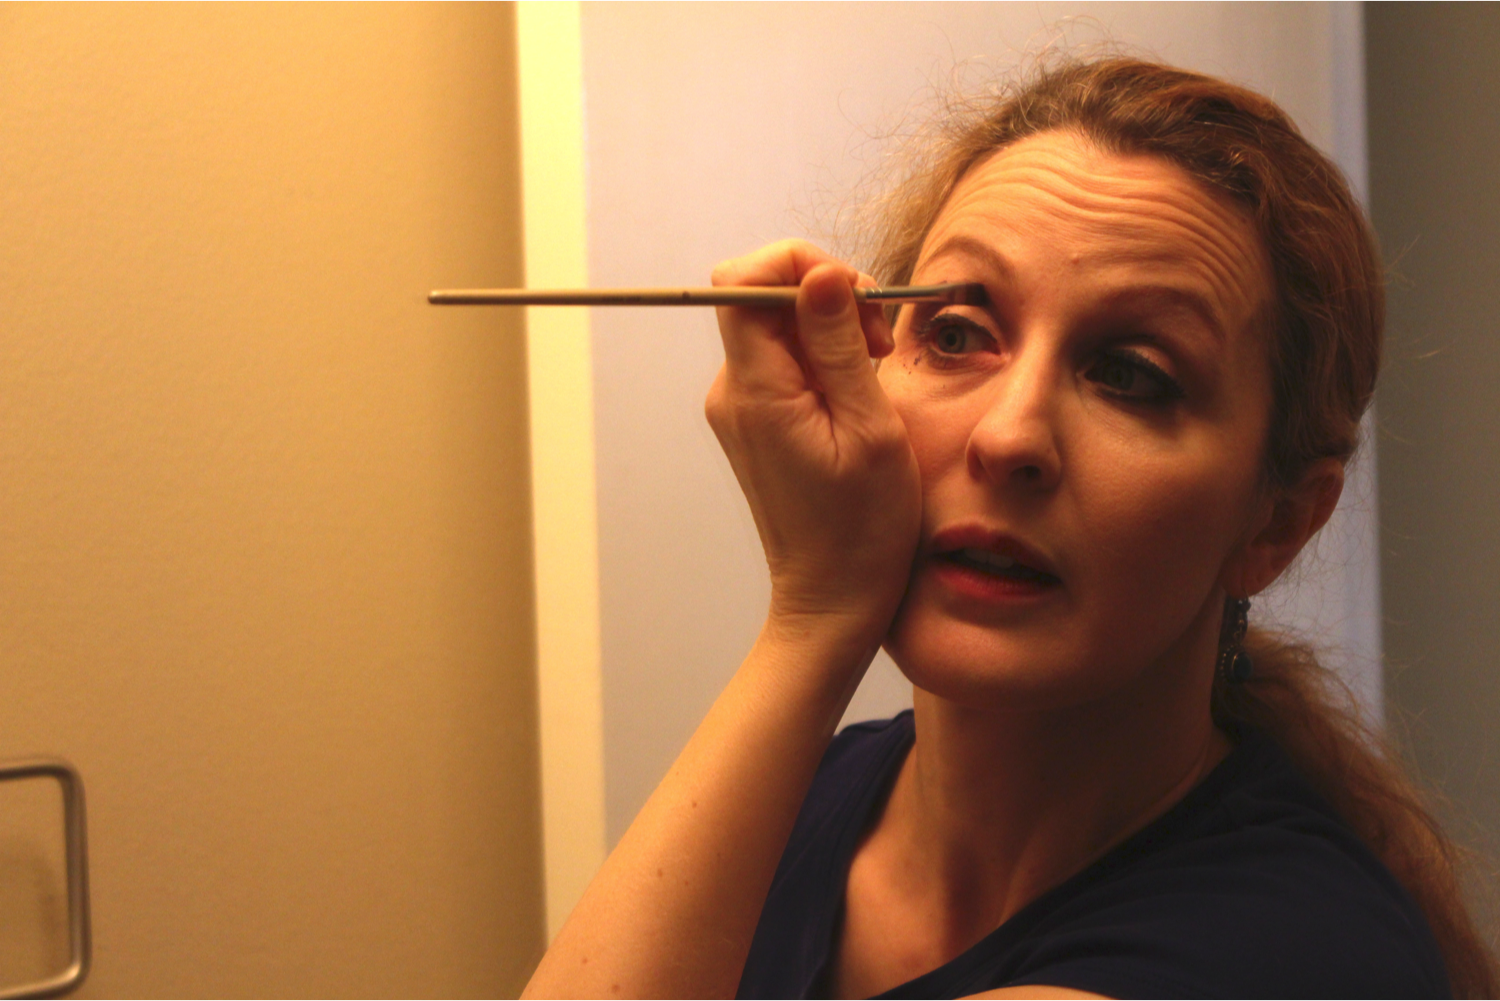 Amara applies eye shadow in her personal studio's bathroom.